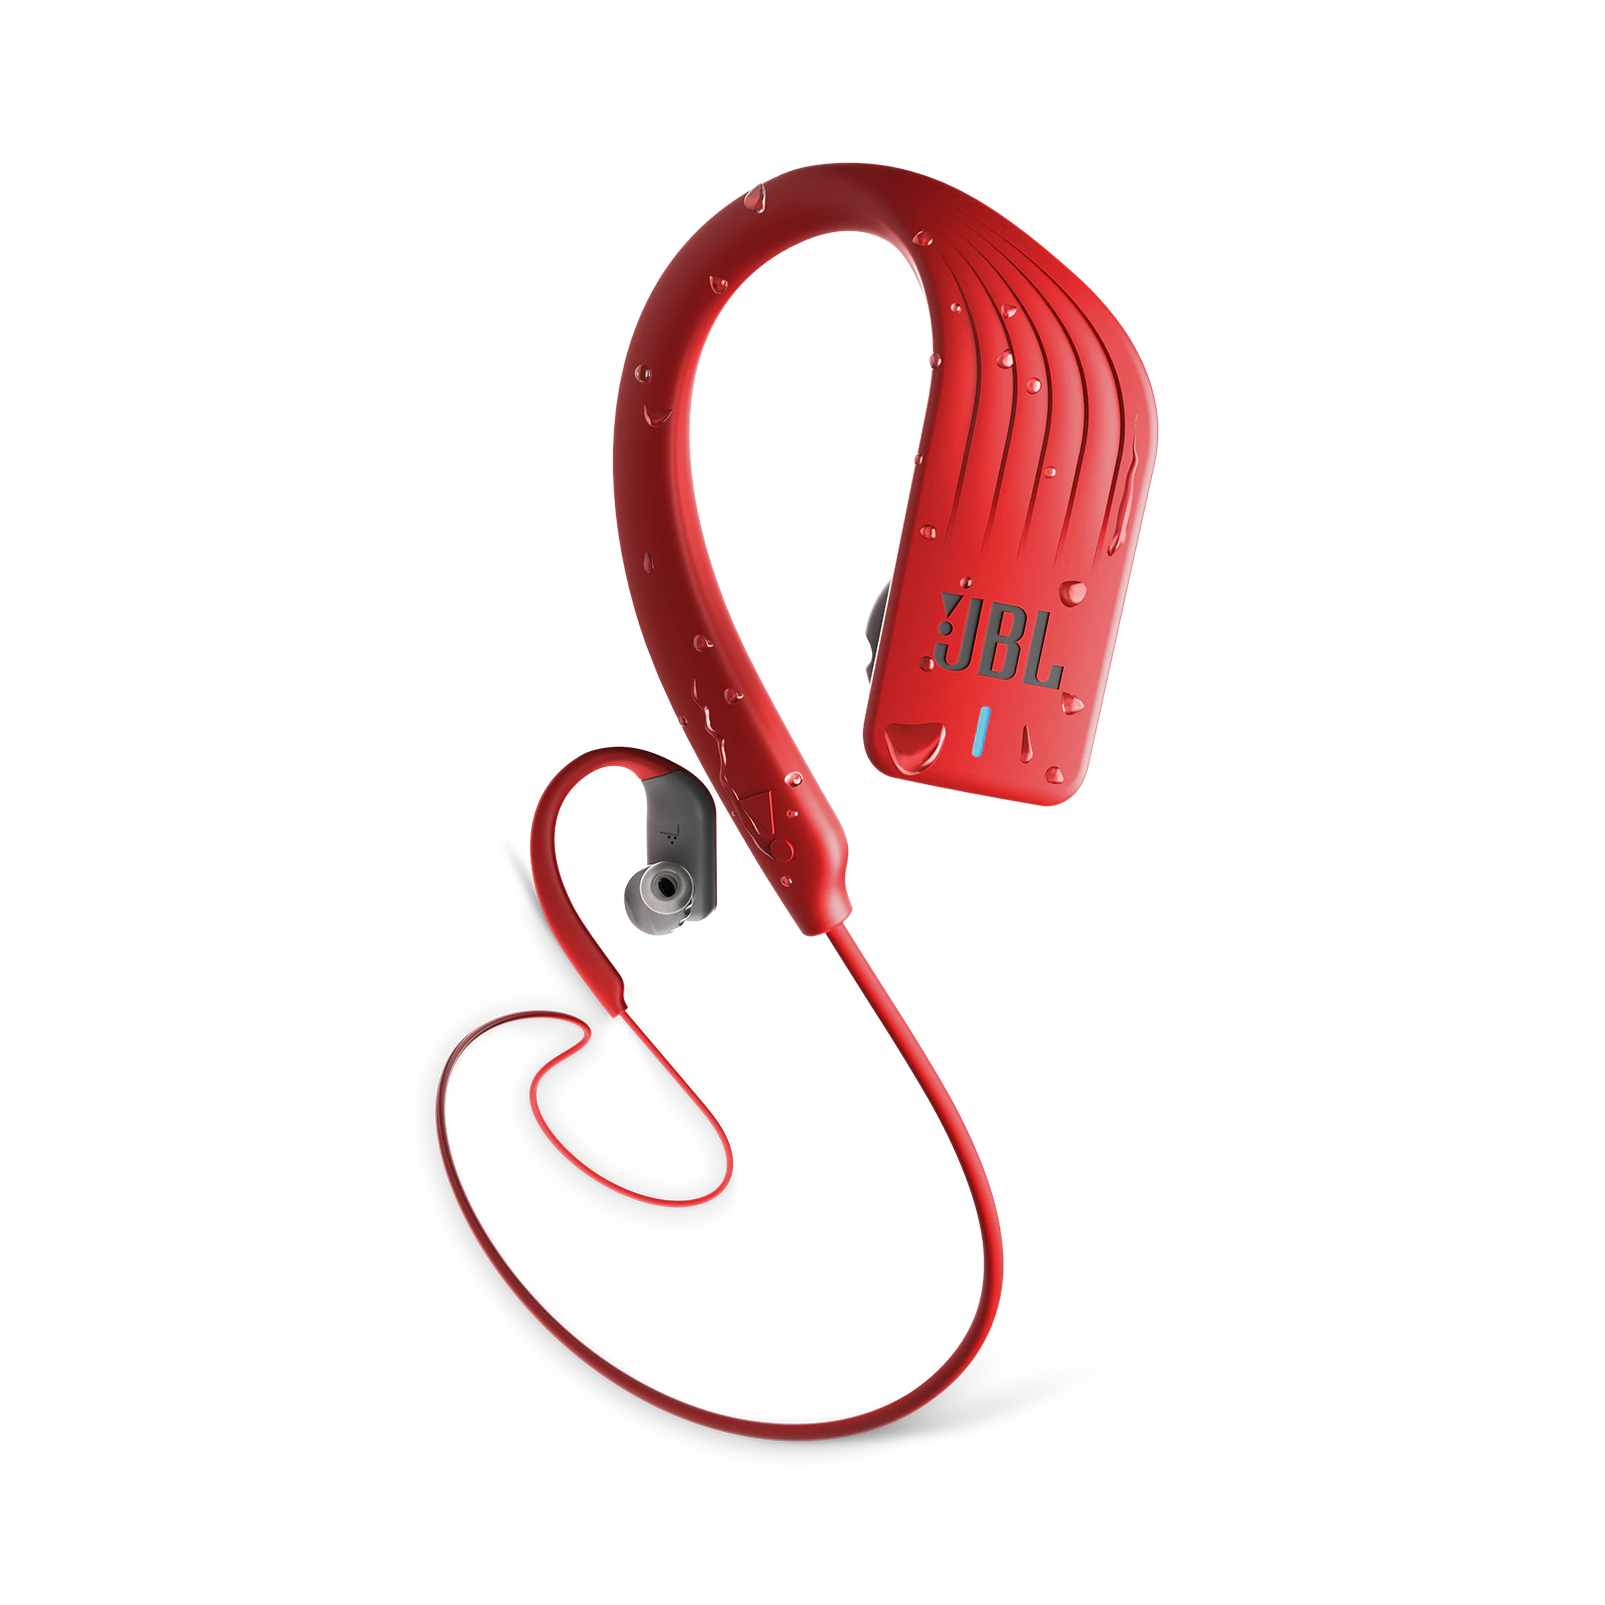 Techvn - tai nghe bluetooth JBL Endurance SPRINT09.png